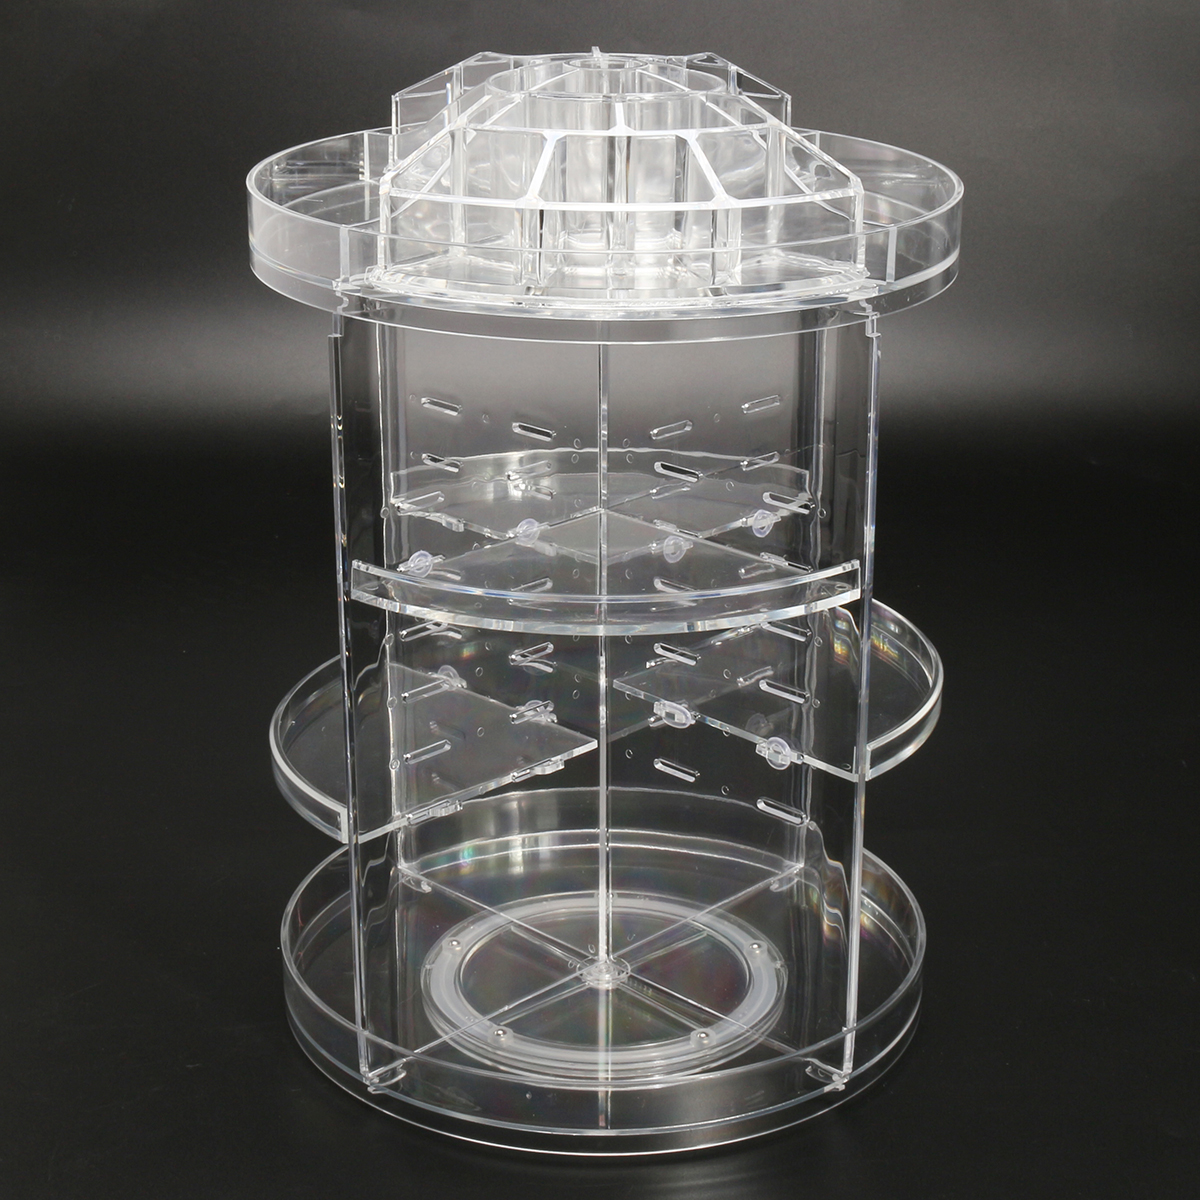 3 Tier Acrylic Cosmetic Makeup Jewelry 360 Rotating Storage